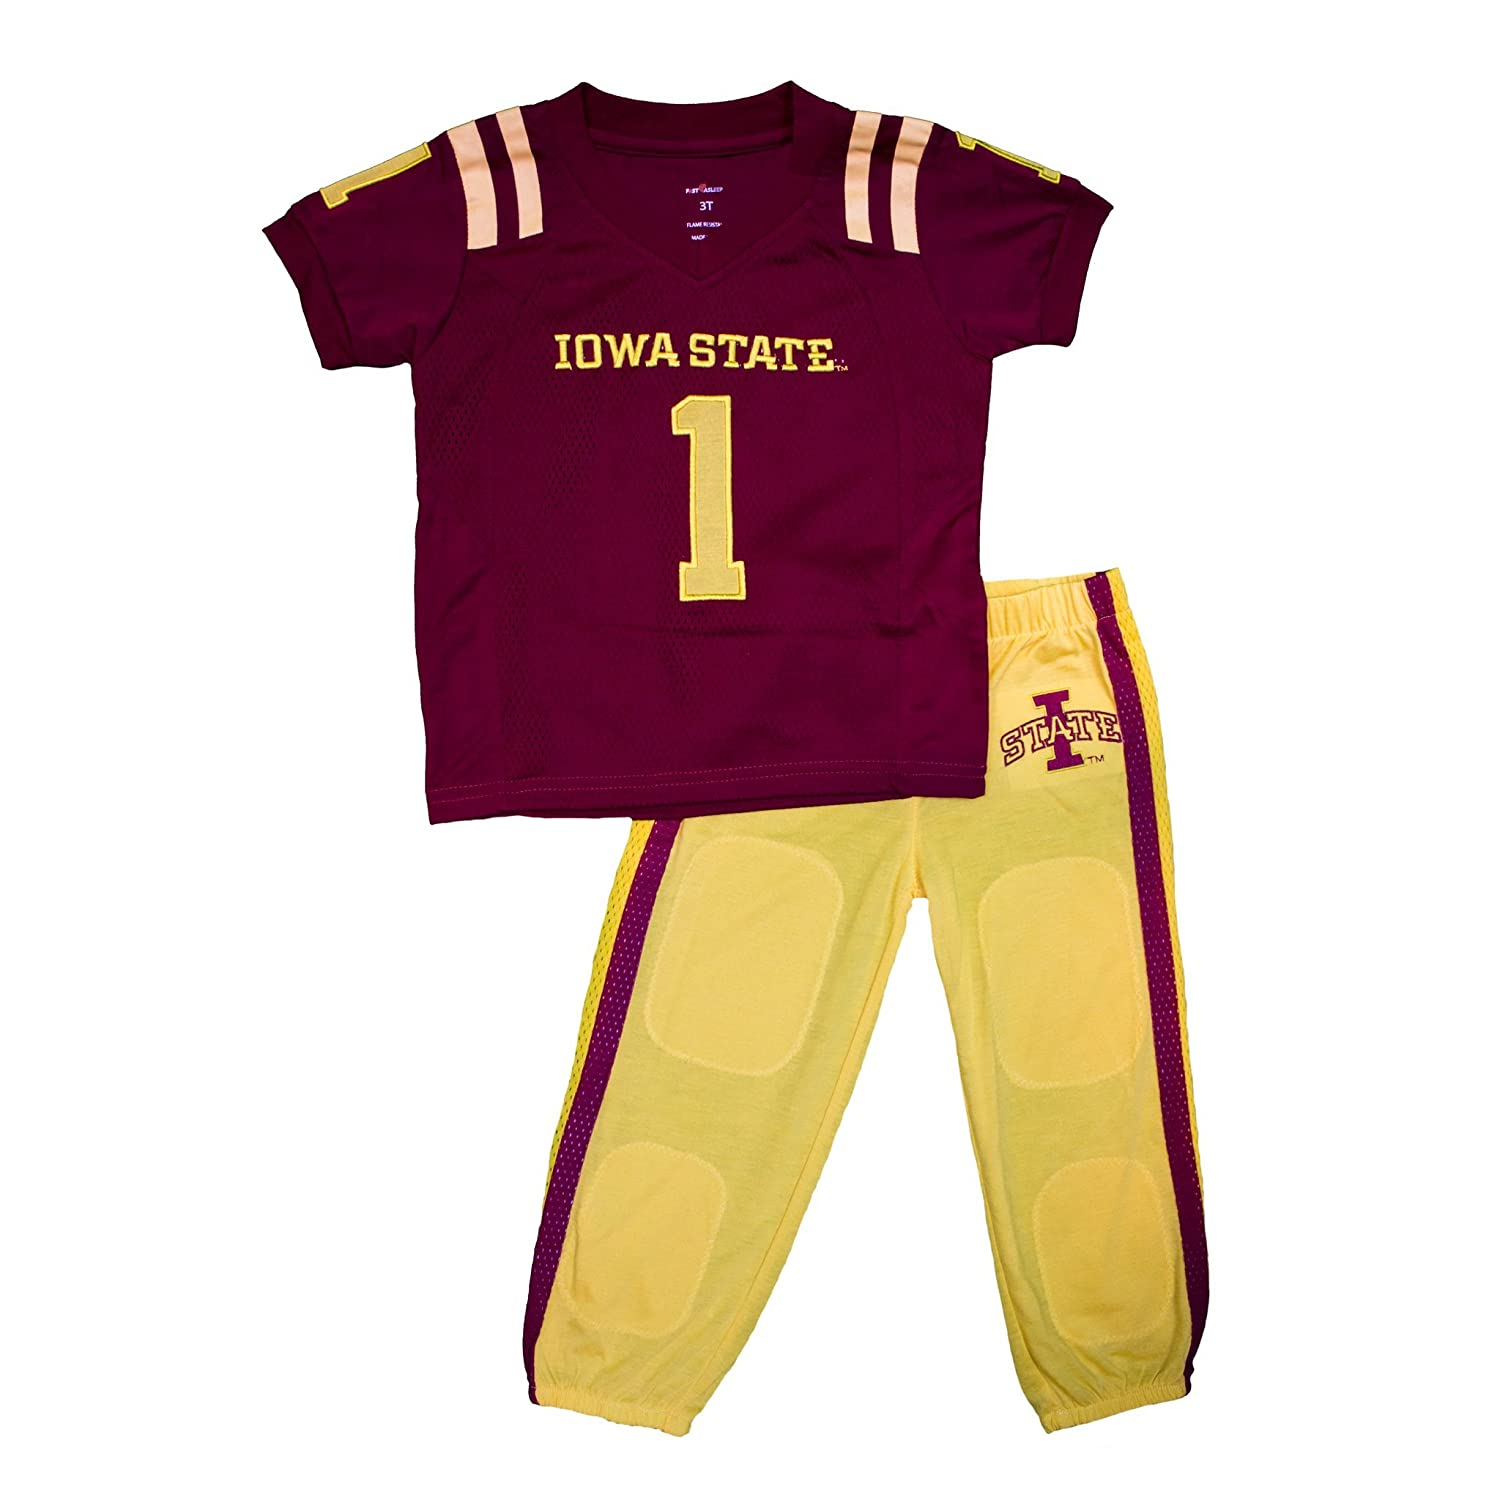 Fast Iowa Asleep Iowa State Cyclones Uniformパジャマセット新しい Fast State B07F7NFSLG 2T, 酒本舗はな:2b53bd4a --- ijpba.info